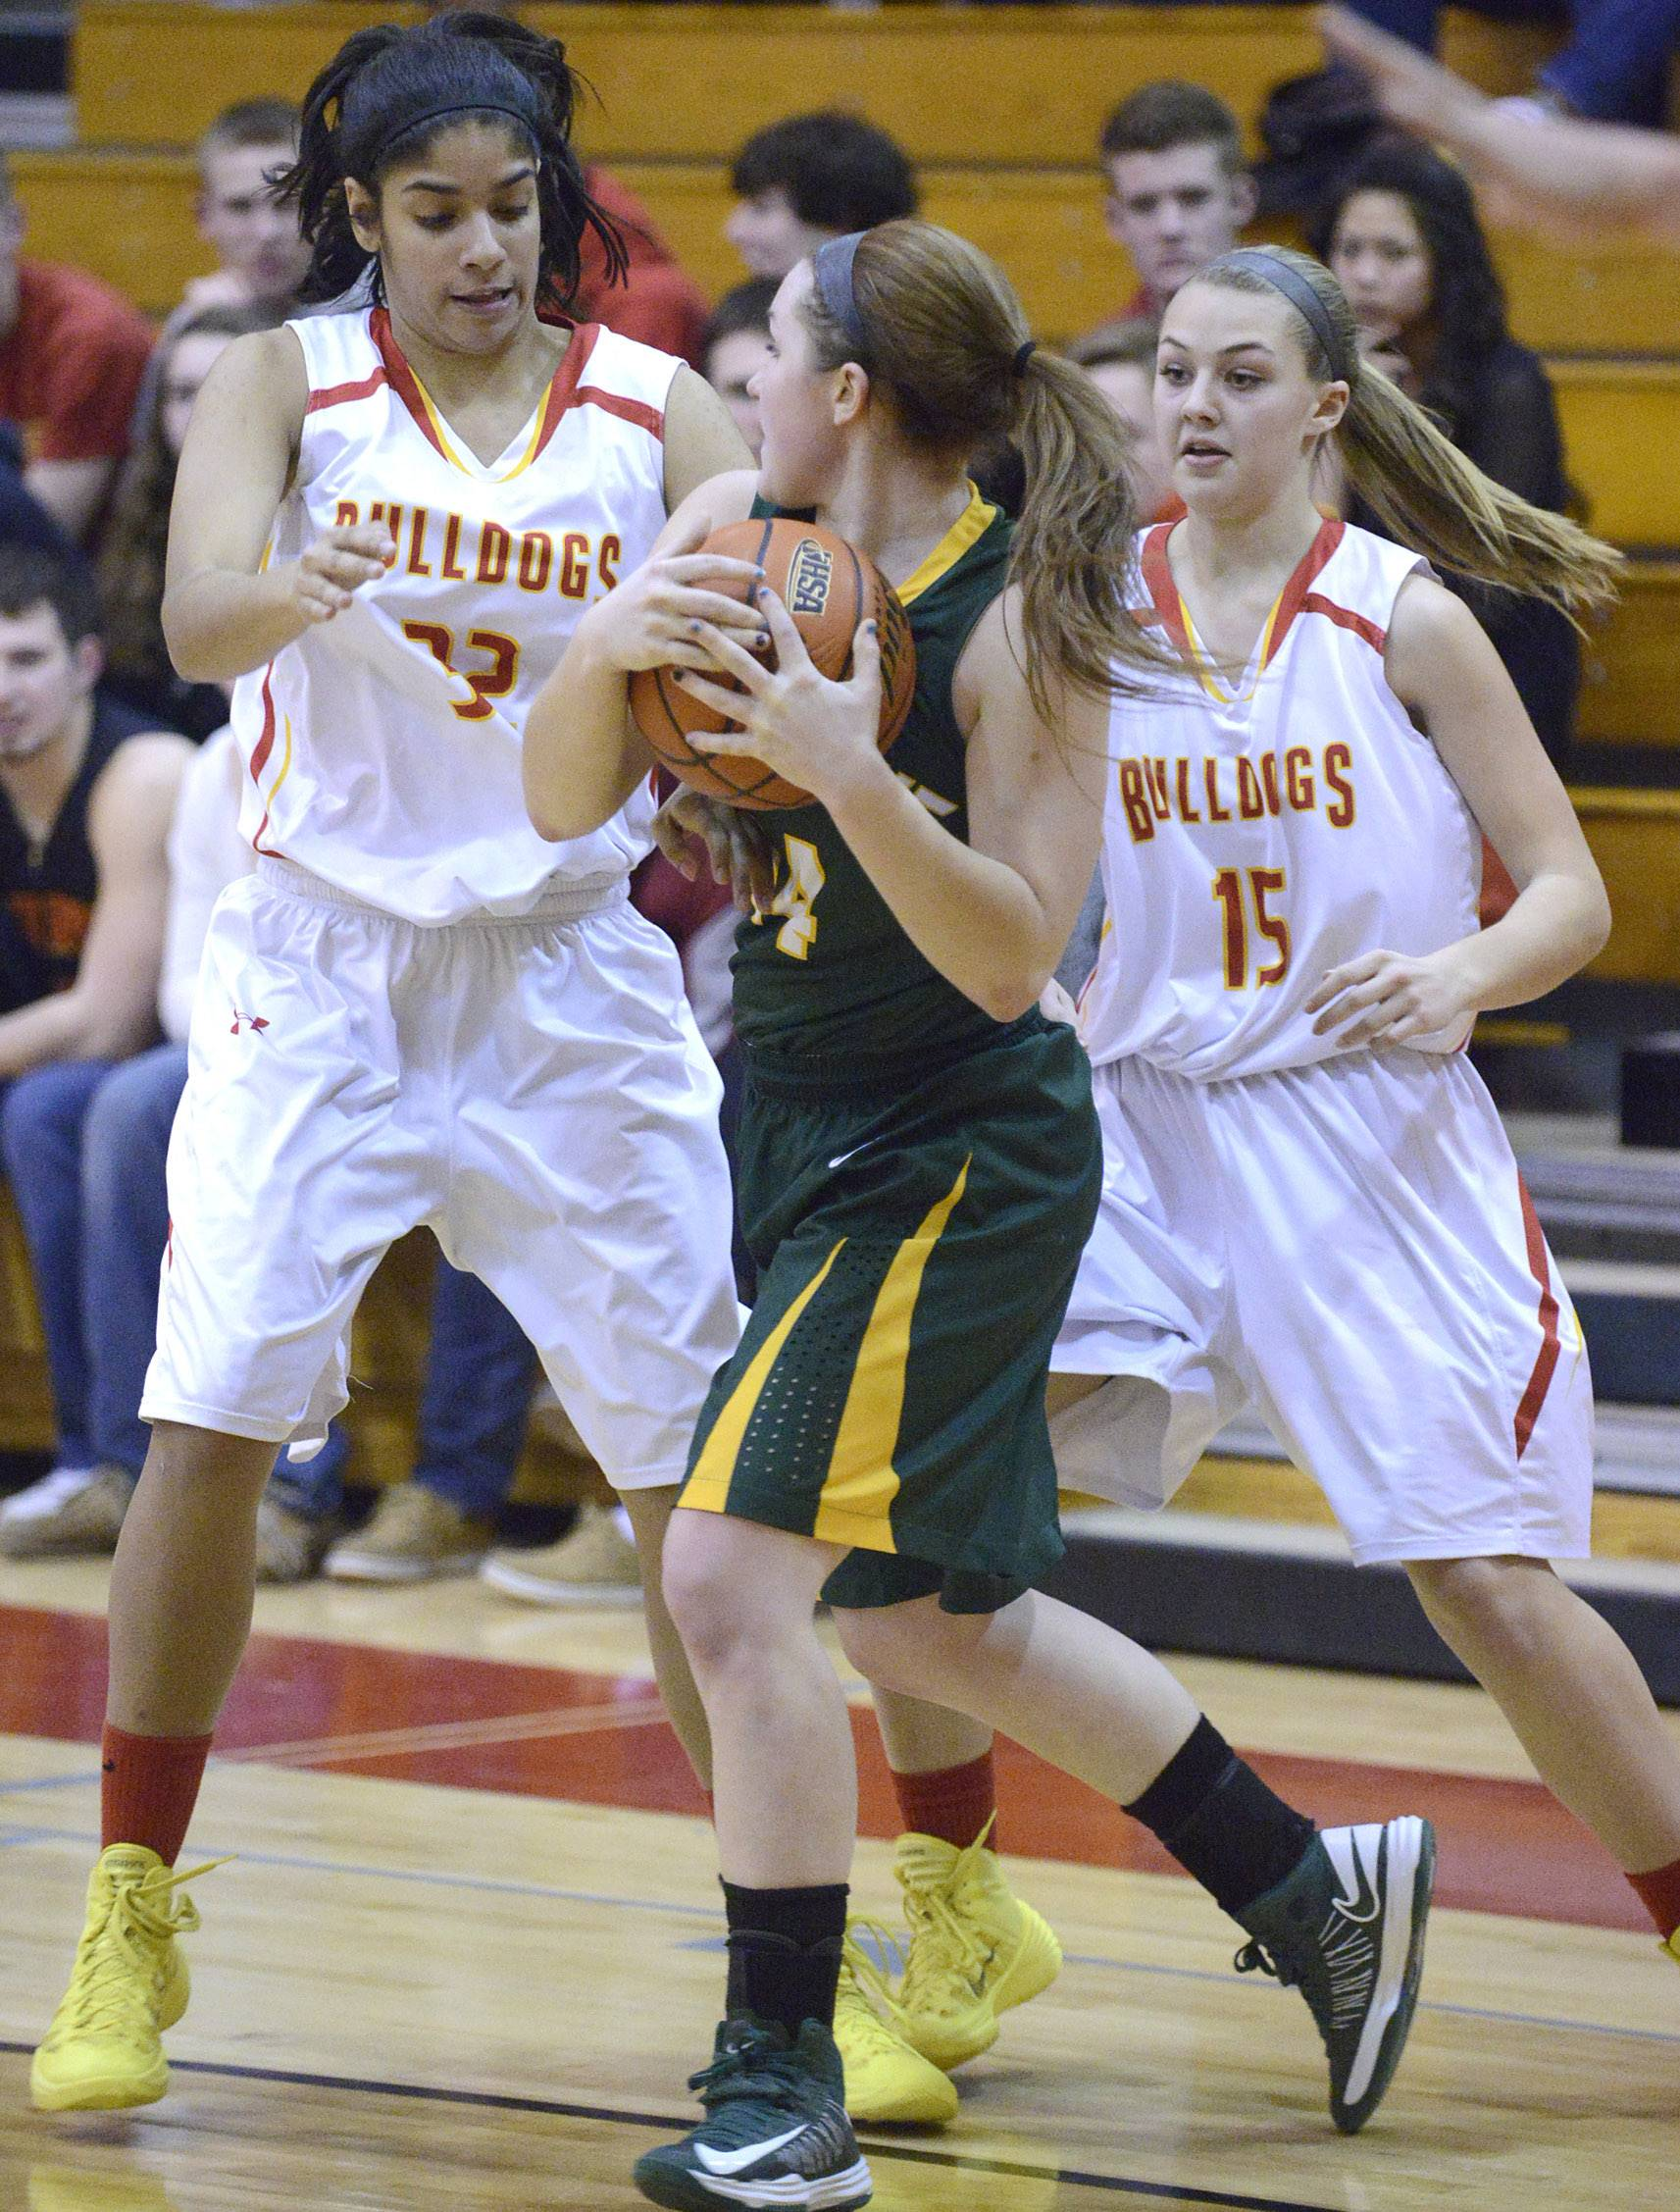 Batavia's Ana Marchiori, left, and Katie Weber, right surround Elk Grove's Taylor Brown on Tuesday in Batavia.